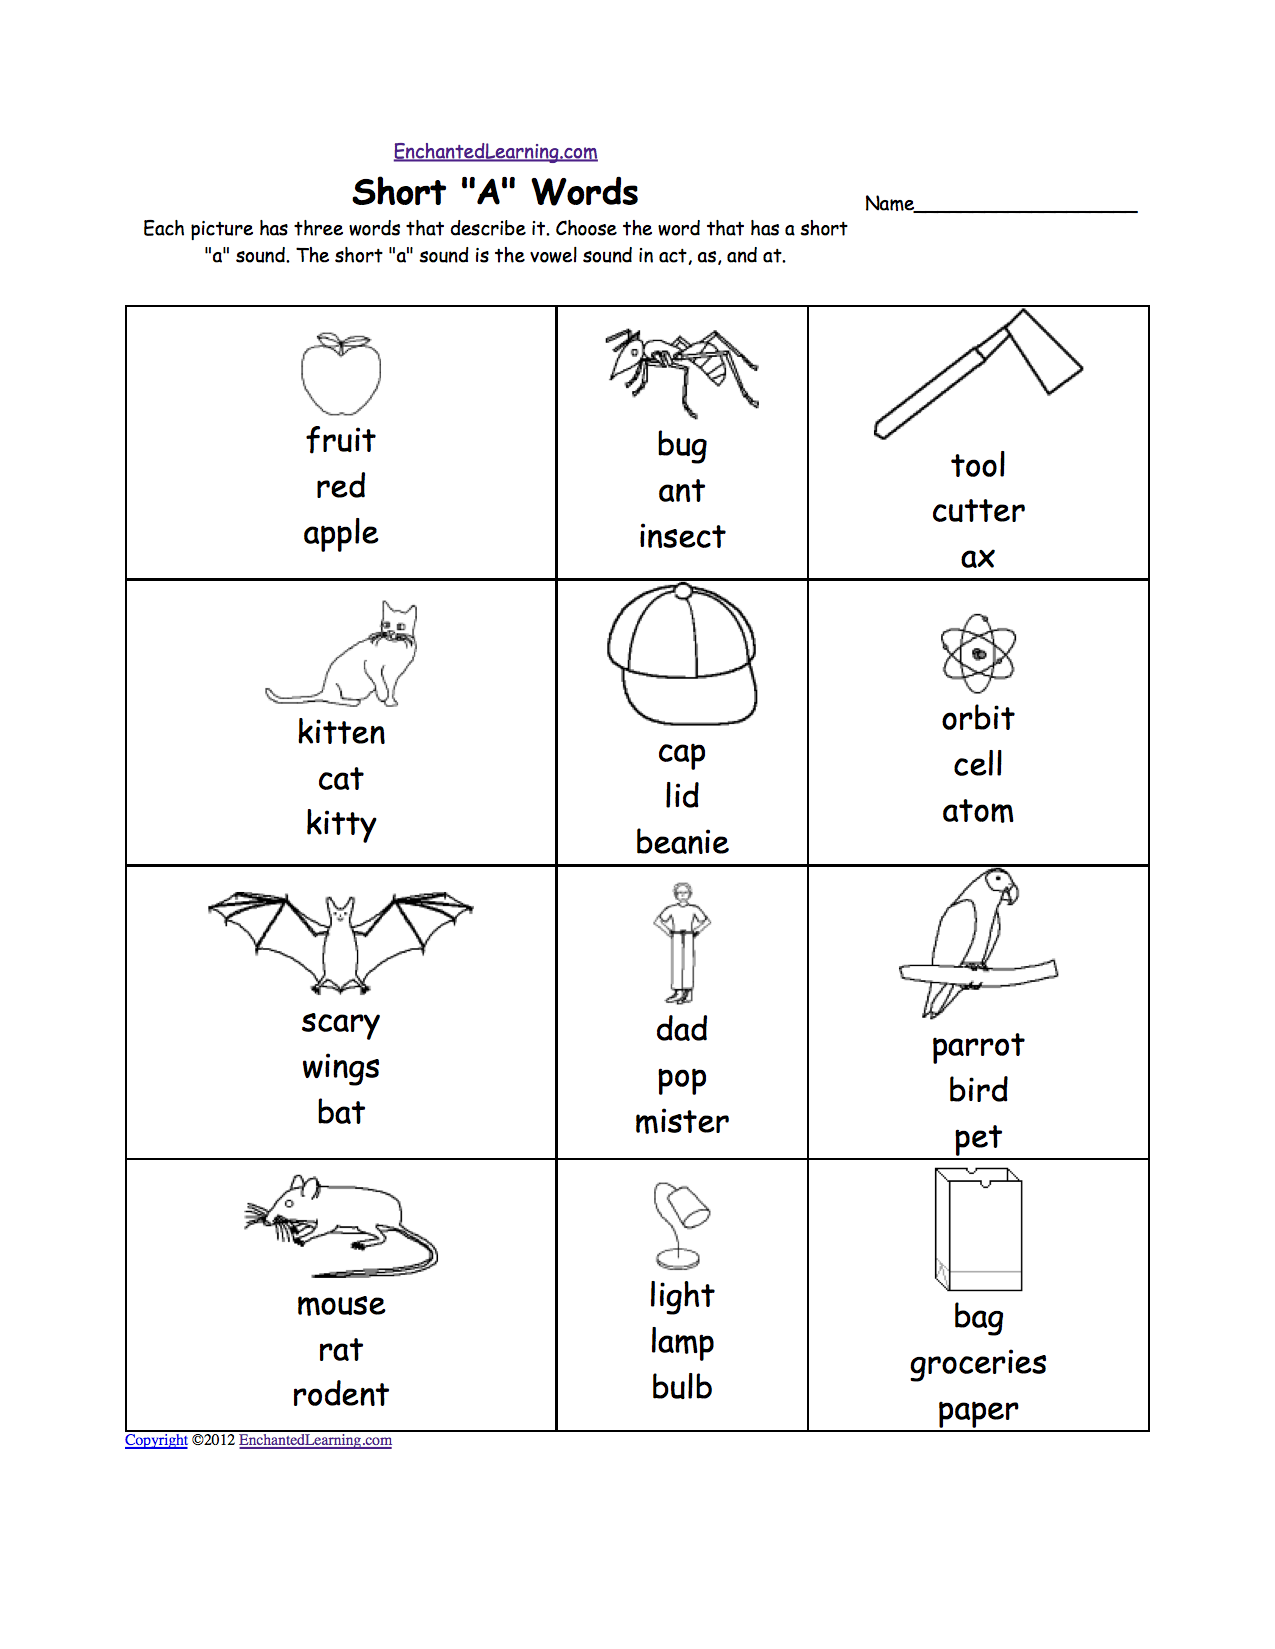 Phonics Worksheets 2Nd Grade Free Worksheets Library